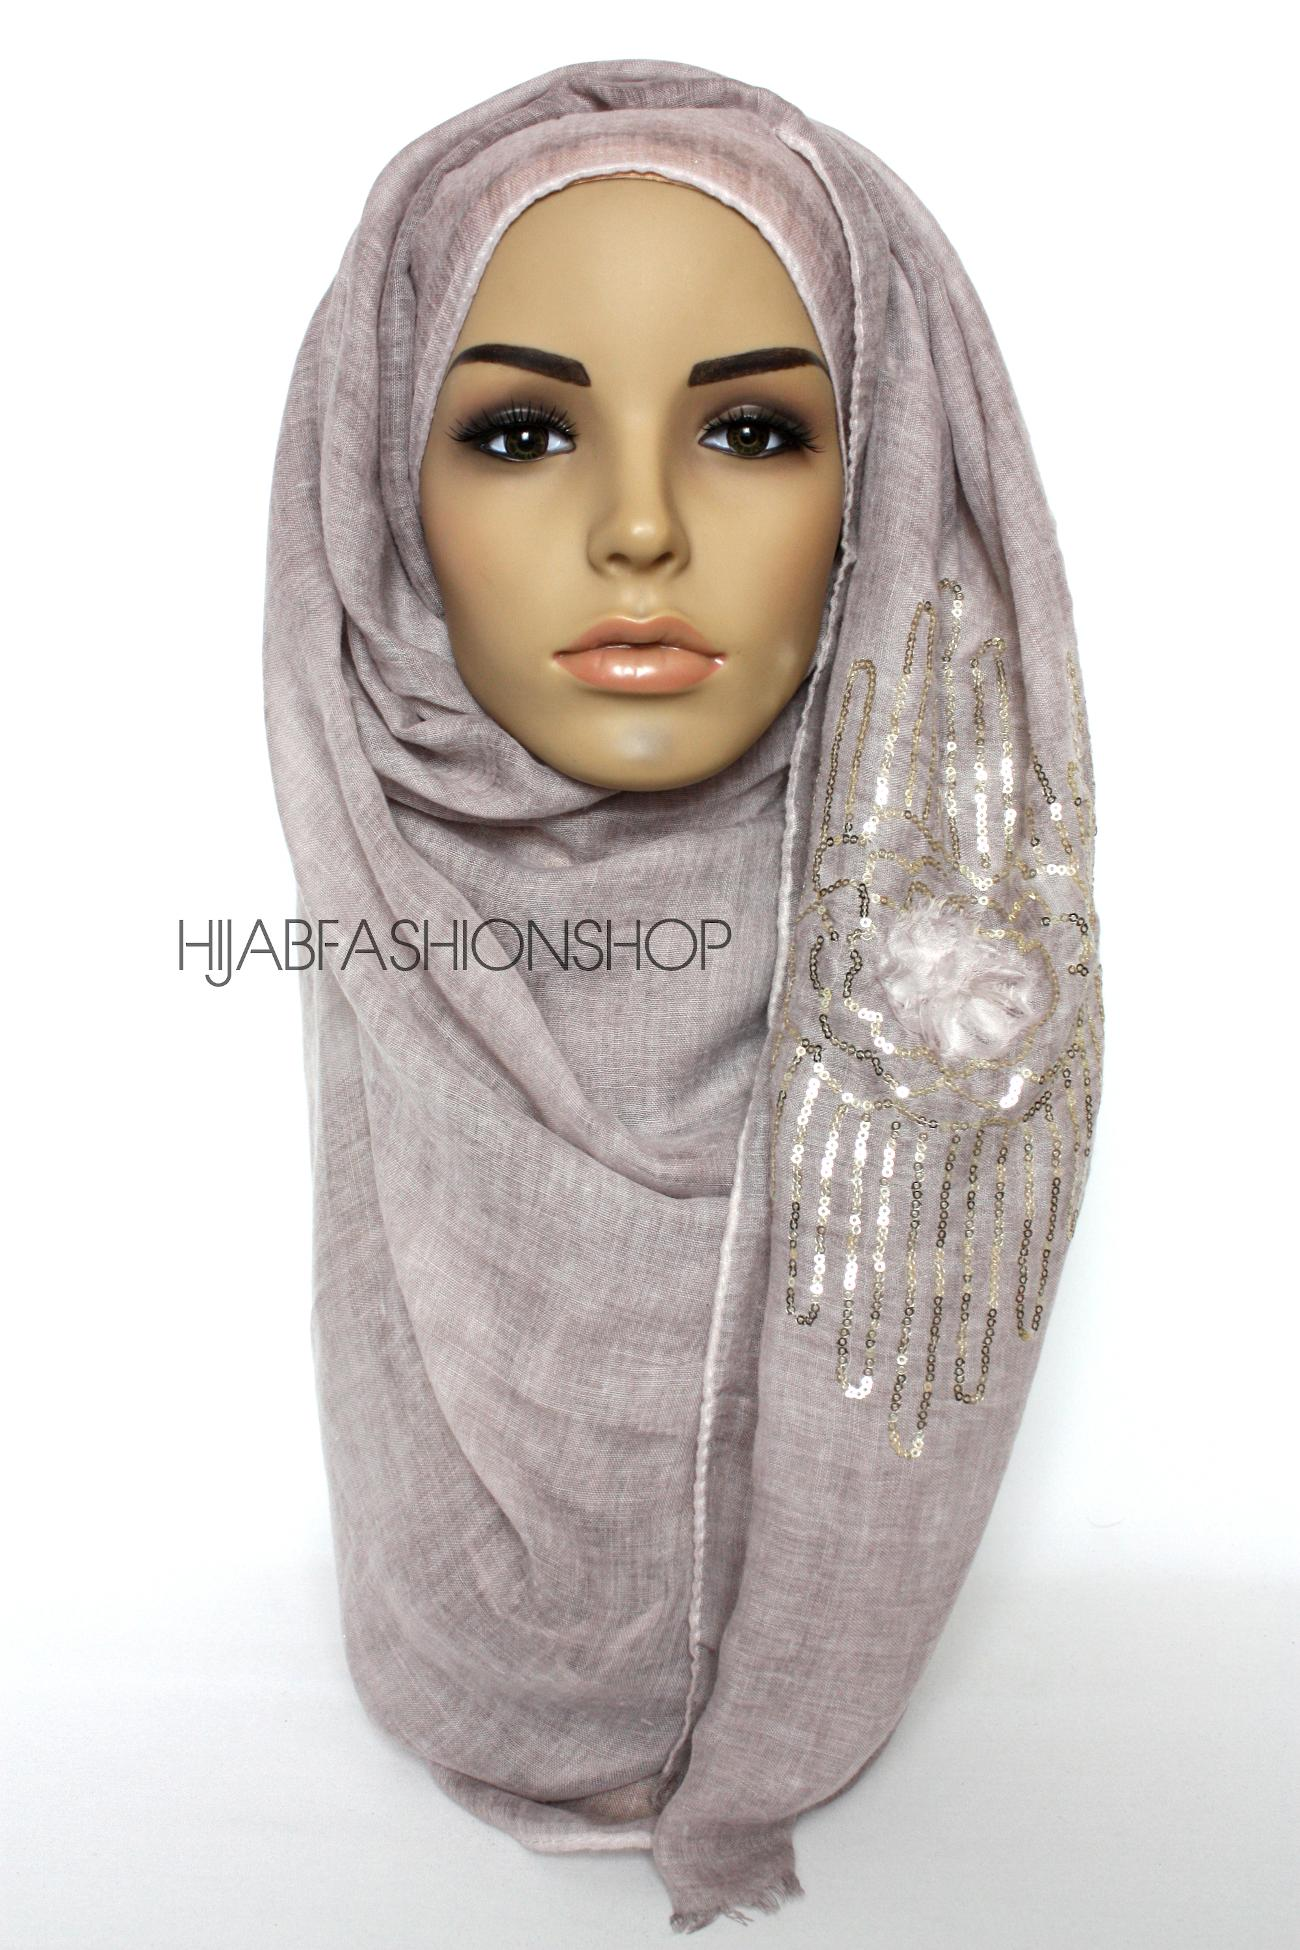 dusky mauve linen look hijab with frayed flower detail and sequins